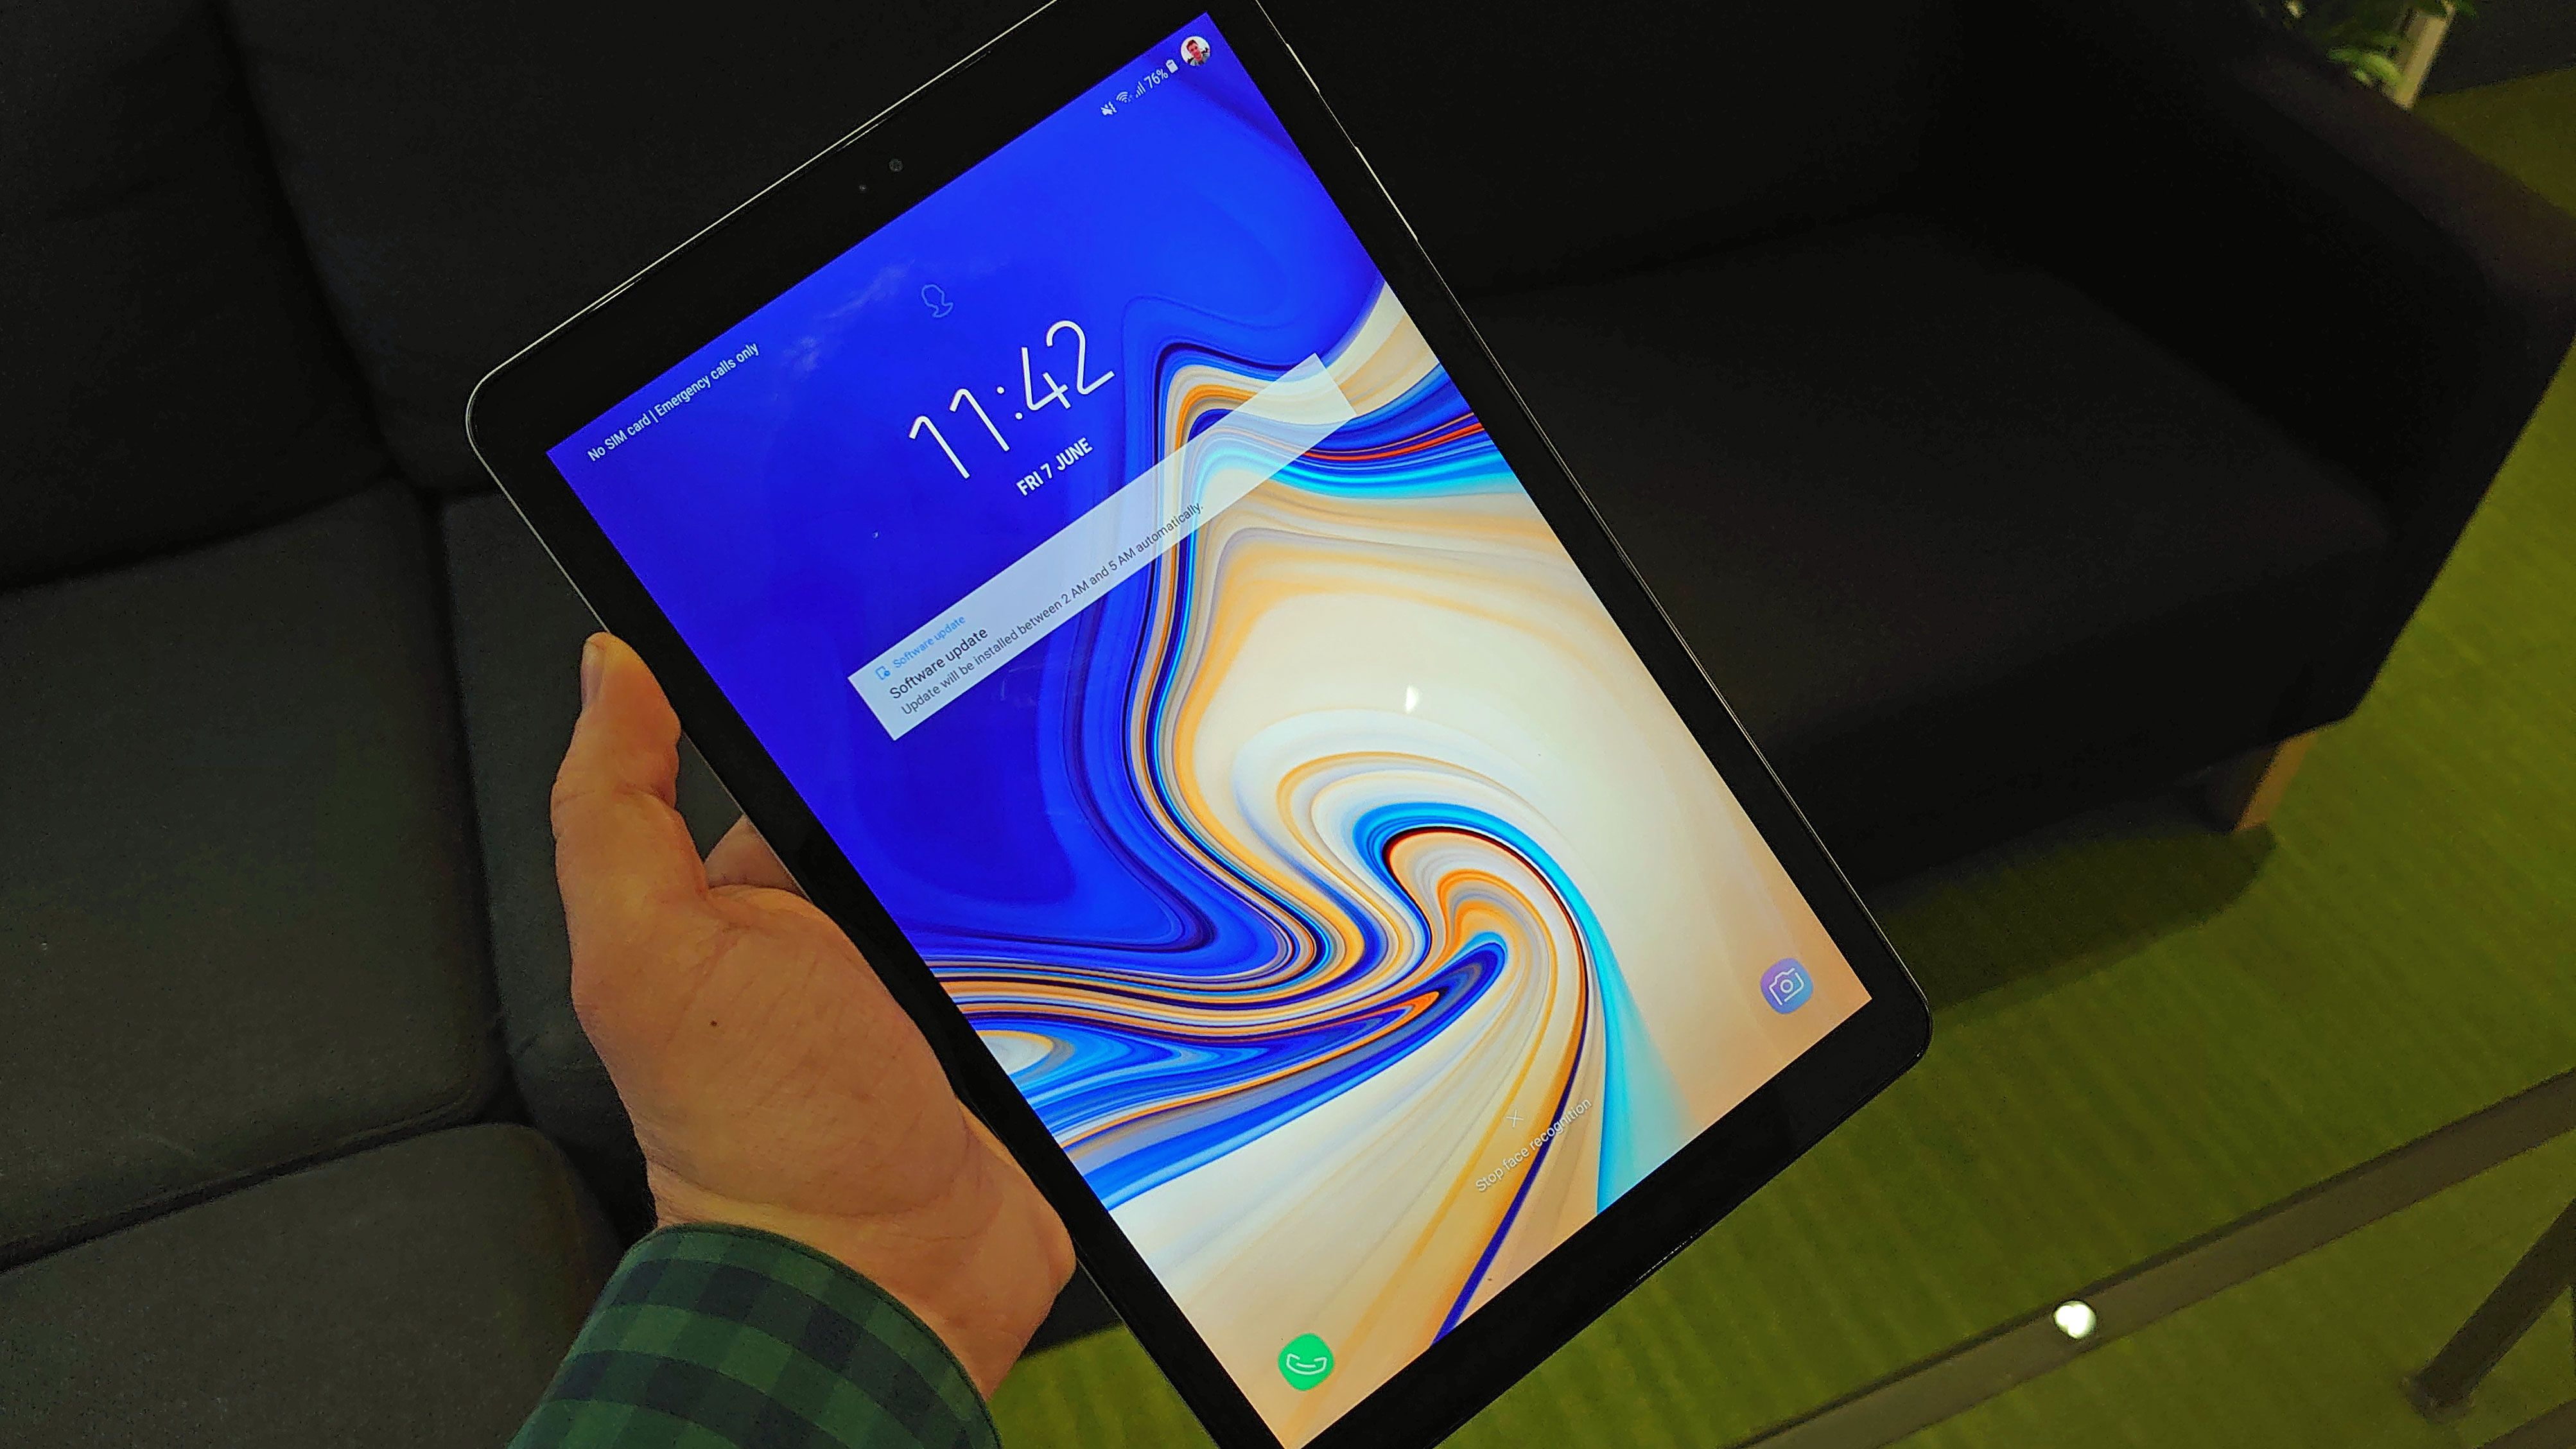 Samsung may be about to launch an ultracheap tablet to